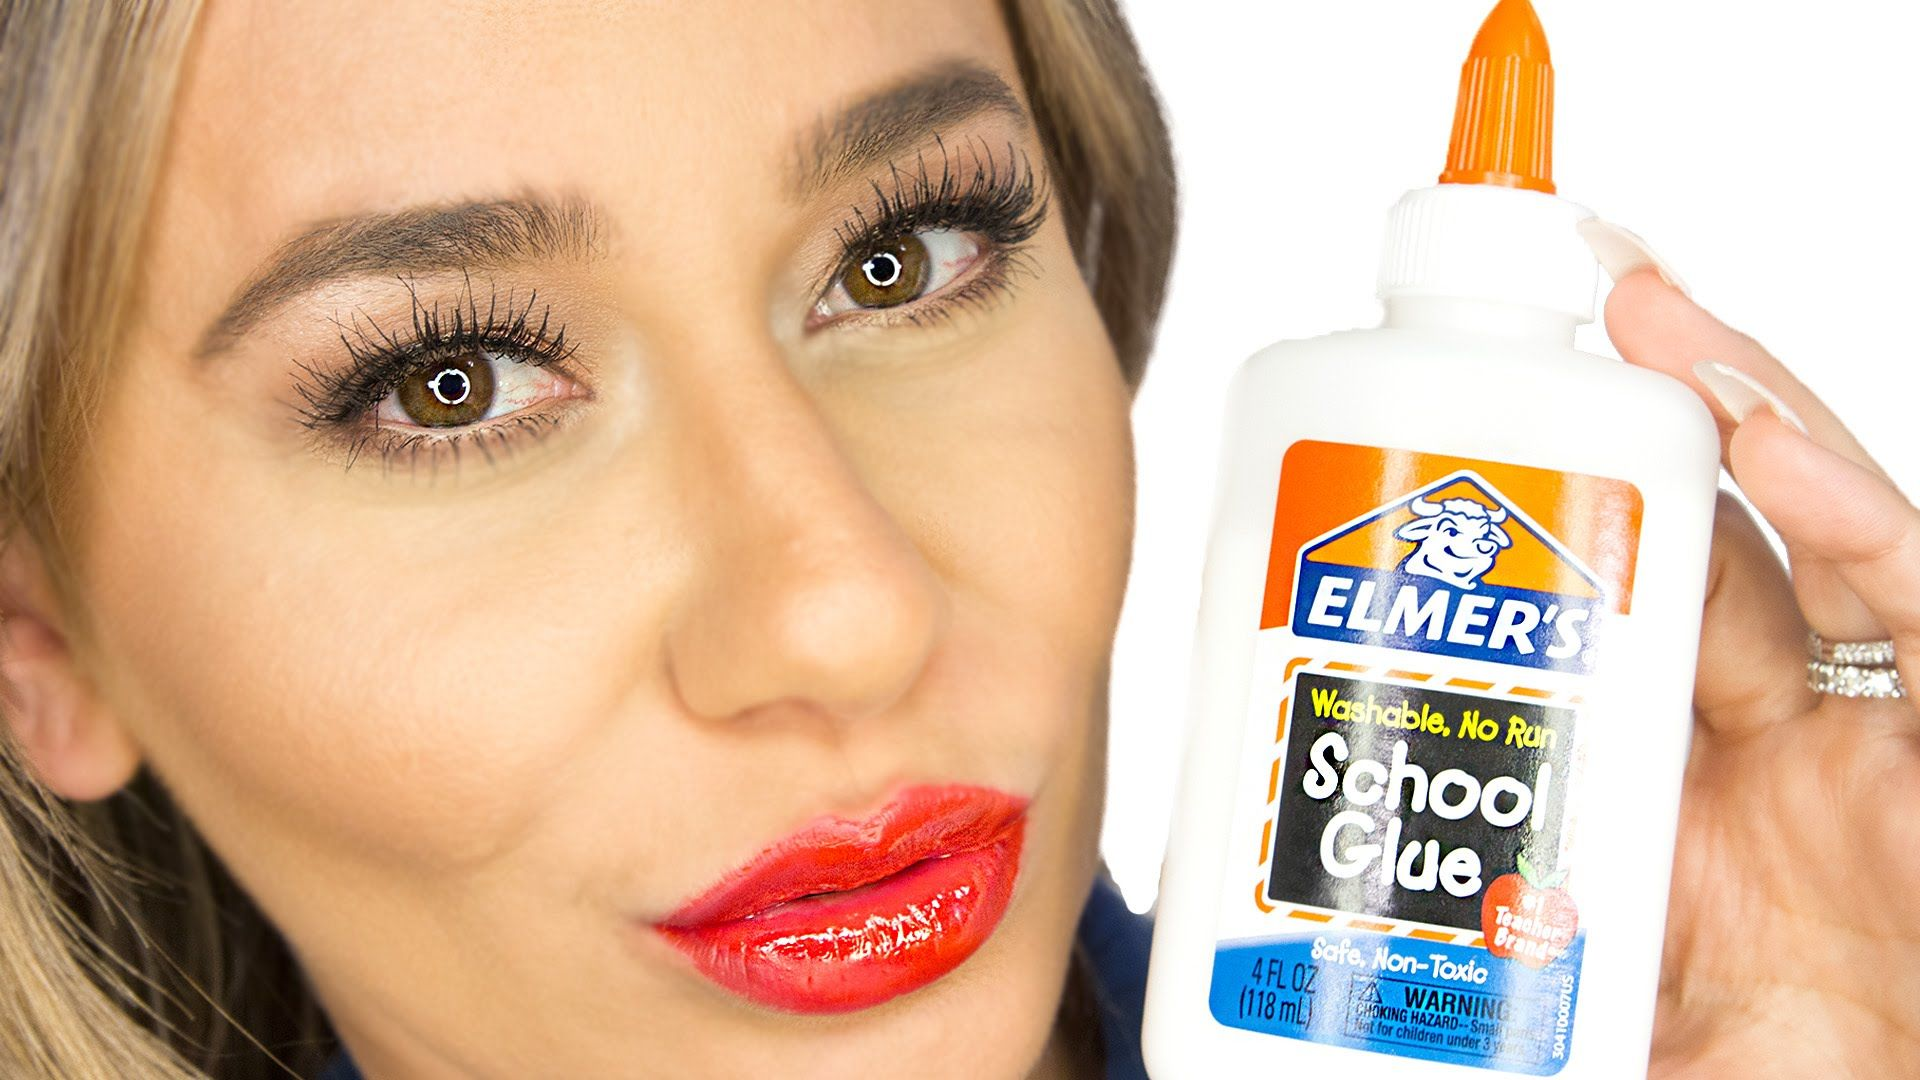 They made a lip stain out of glue and food coloring! Gotta try this ...